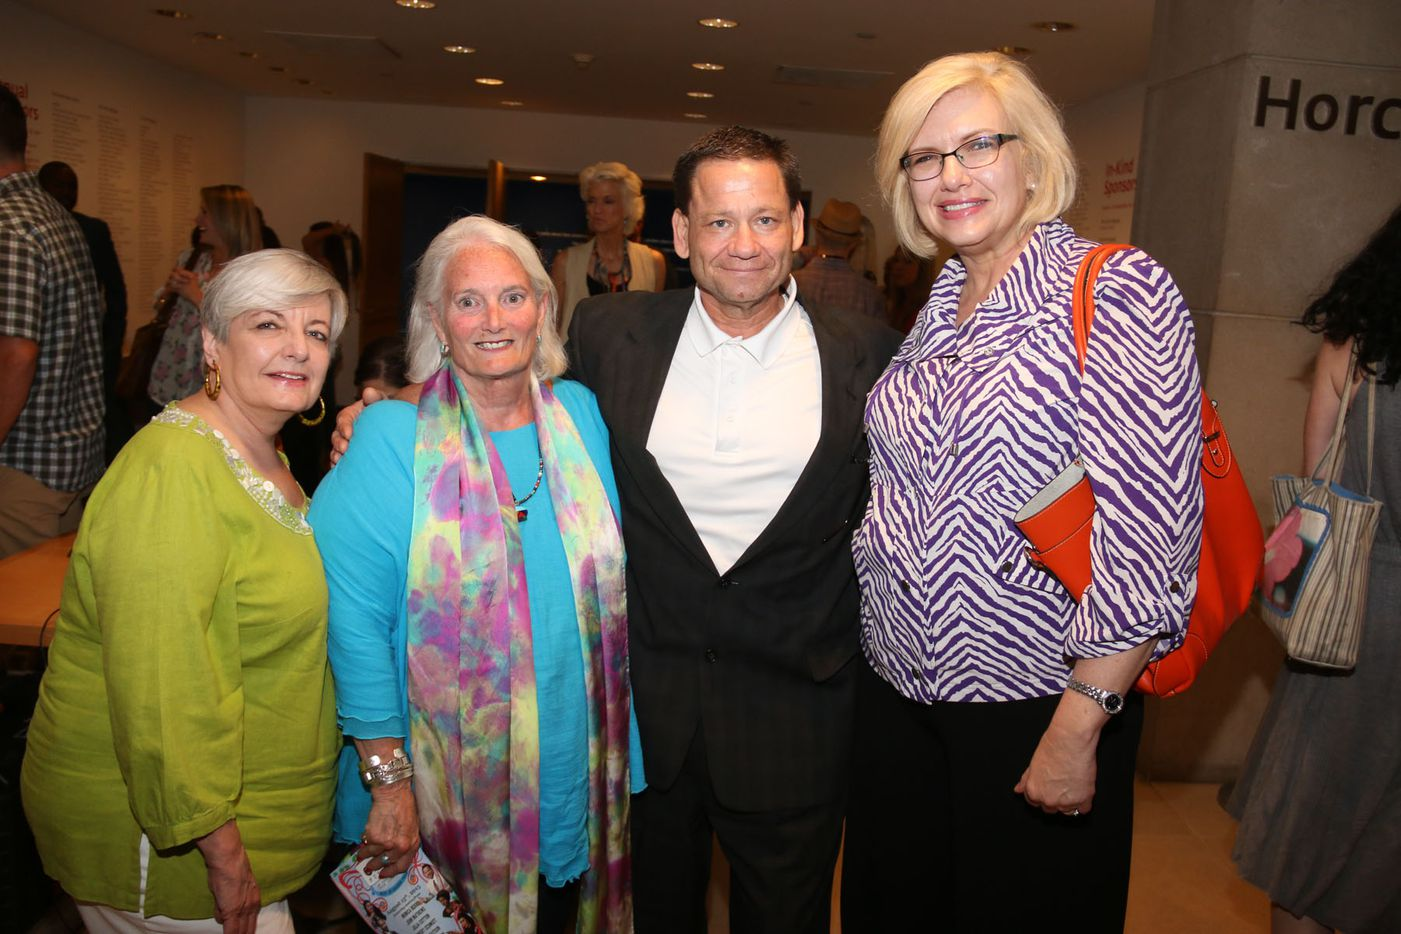 John Mathews performed in  the best of season four at the Dallas Museum of Art on August 15, 2015